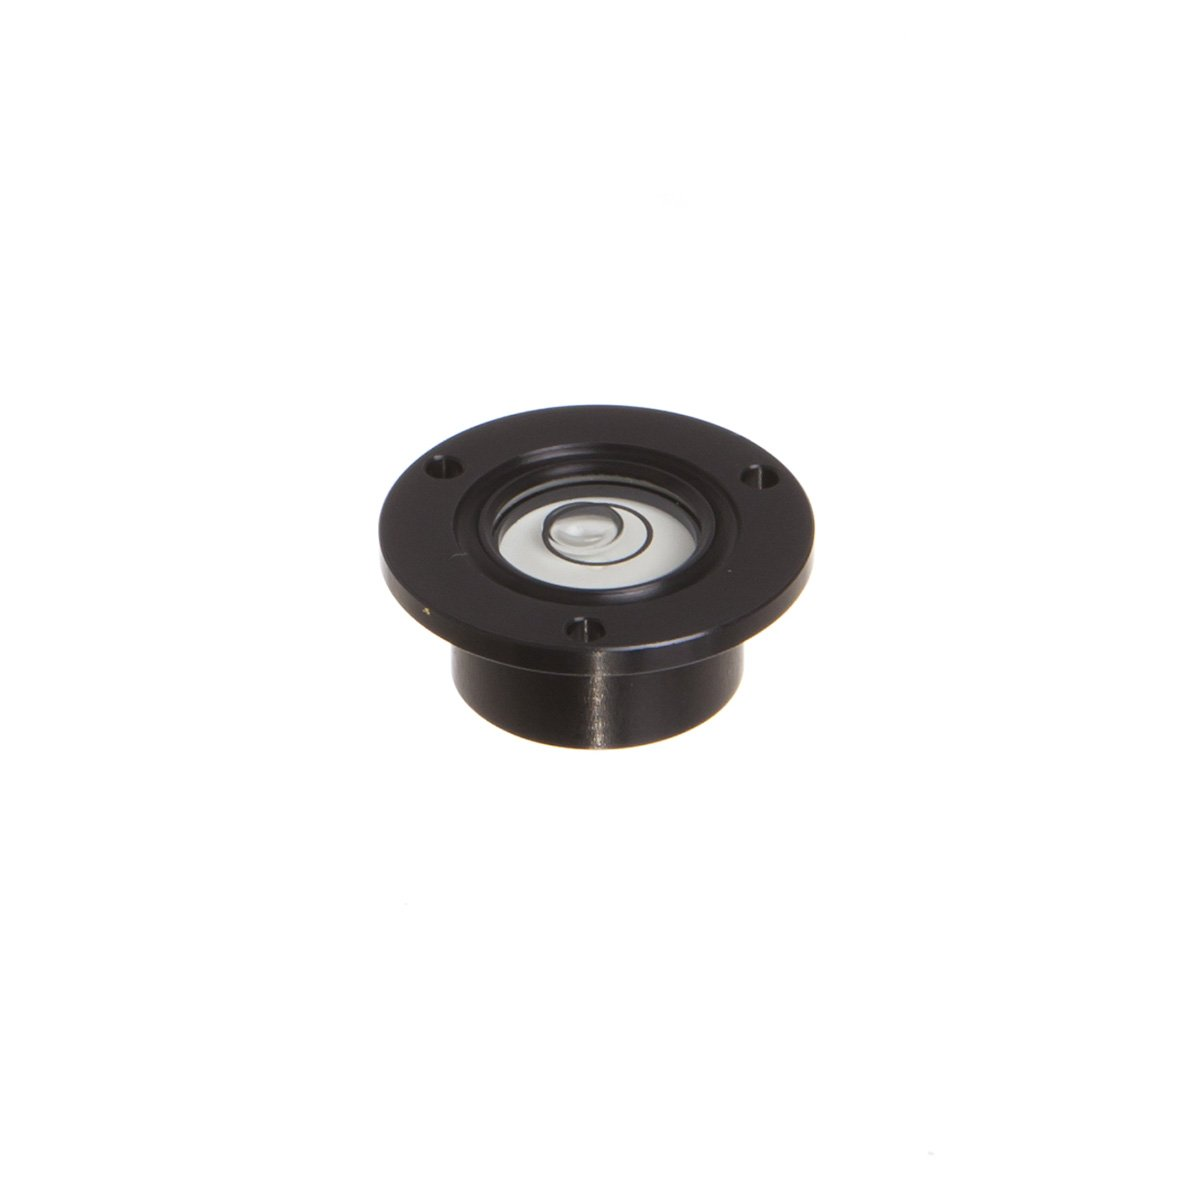 2277-ALS-20-K-30-B Collar Type 14mm Inc. J.W Winco GN2277 Aluminum Bulls Eye Level with Mounting Flange for Inserting